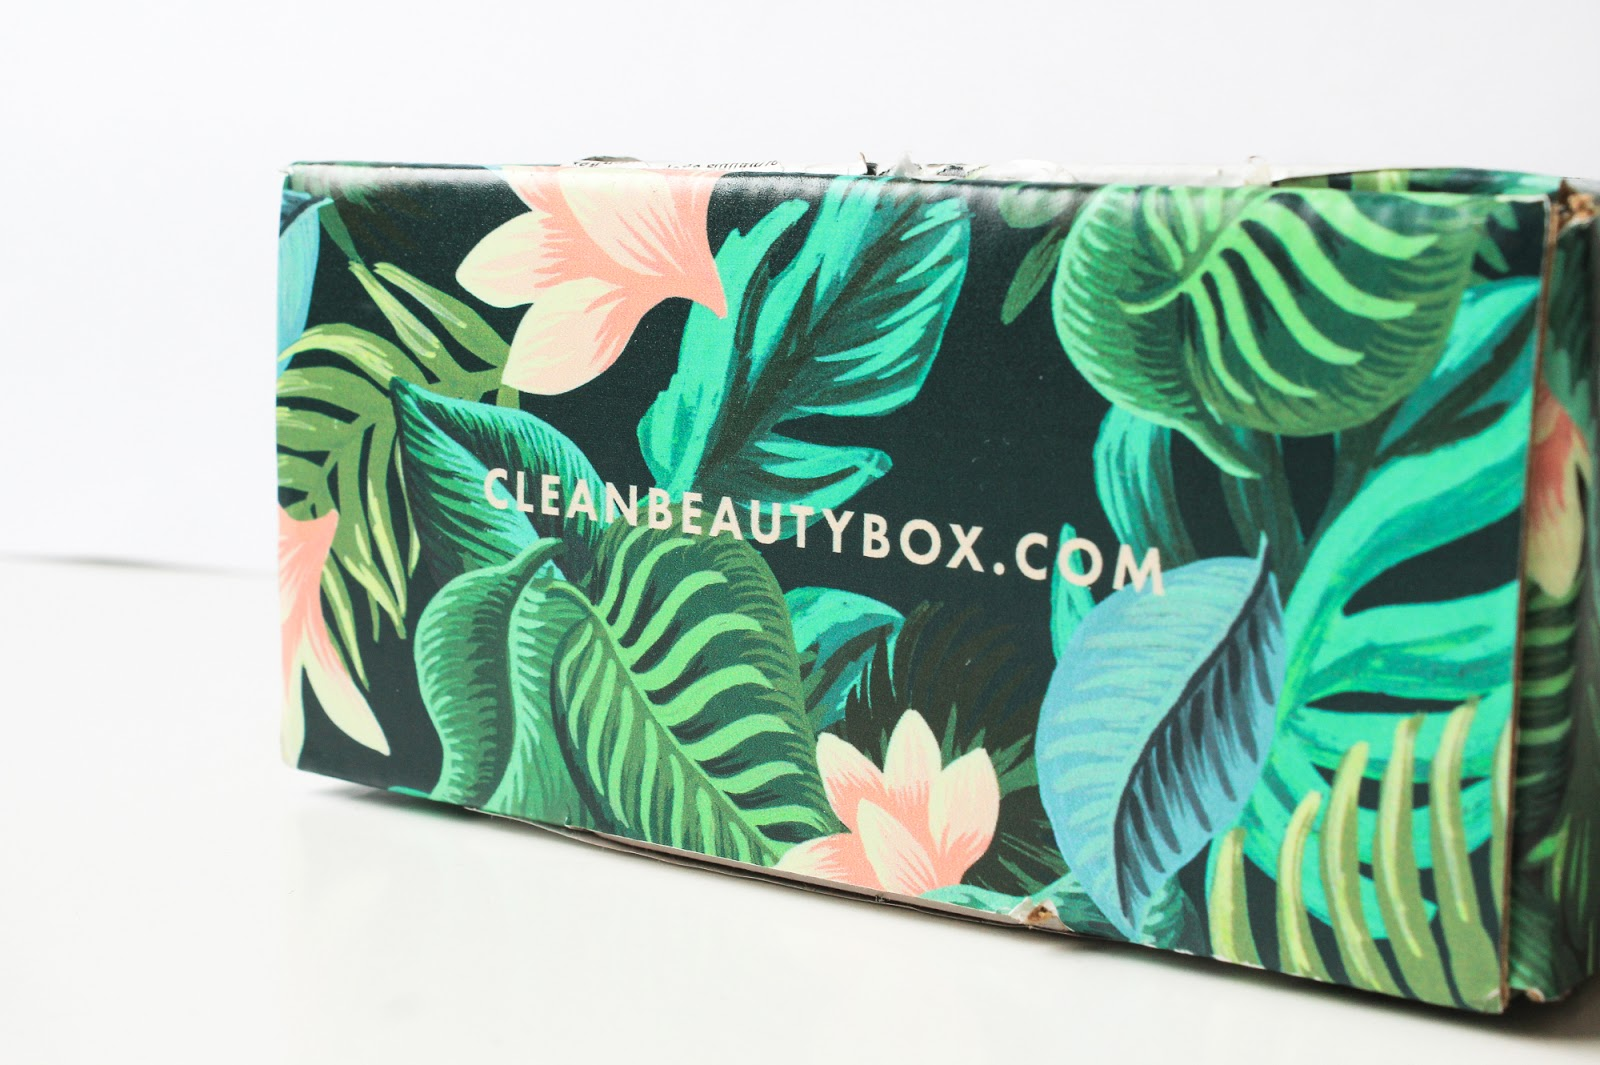 March Clean Beauty Box Indulge Beneath Your Mask new packaging, eco friendly, less waste